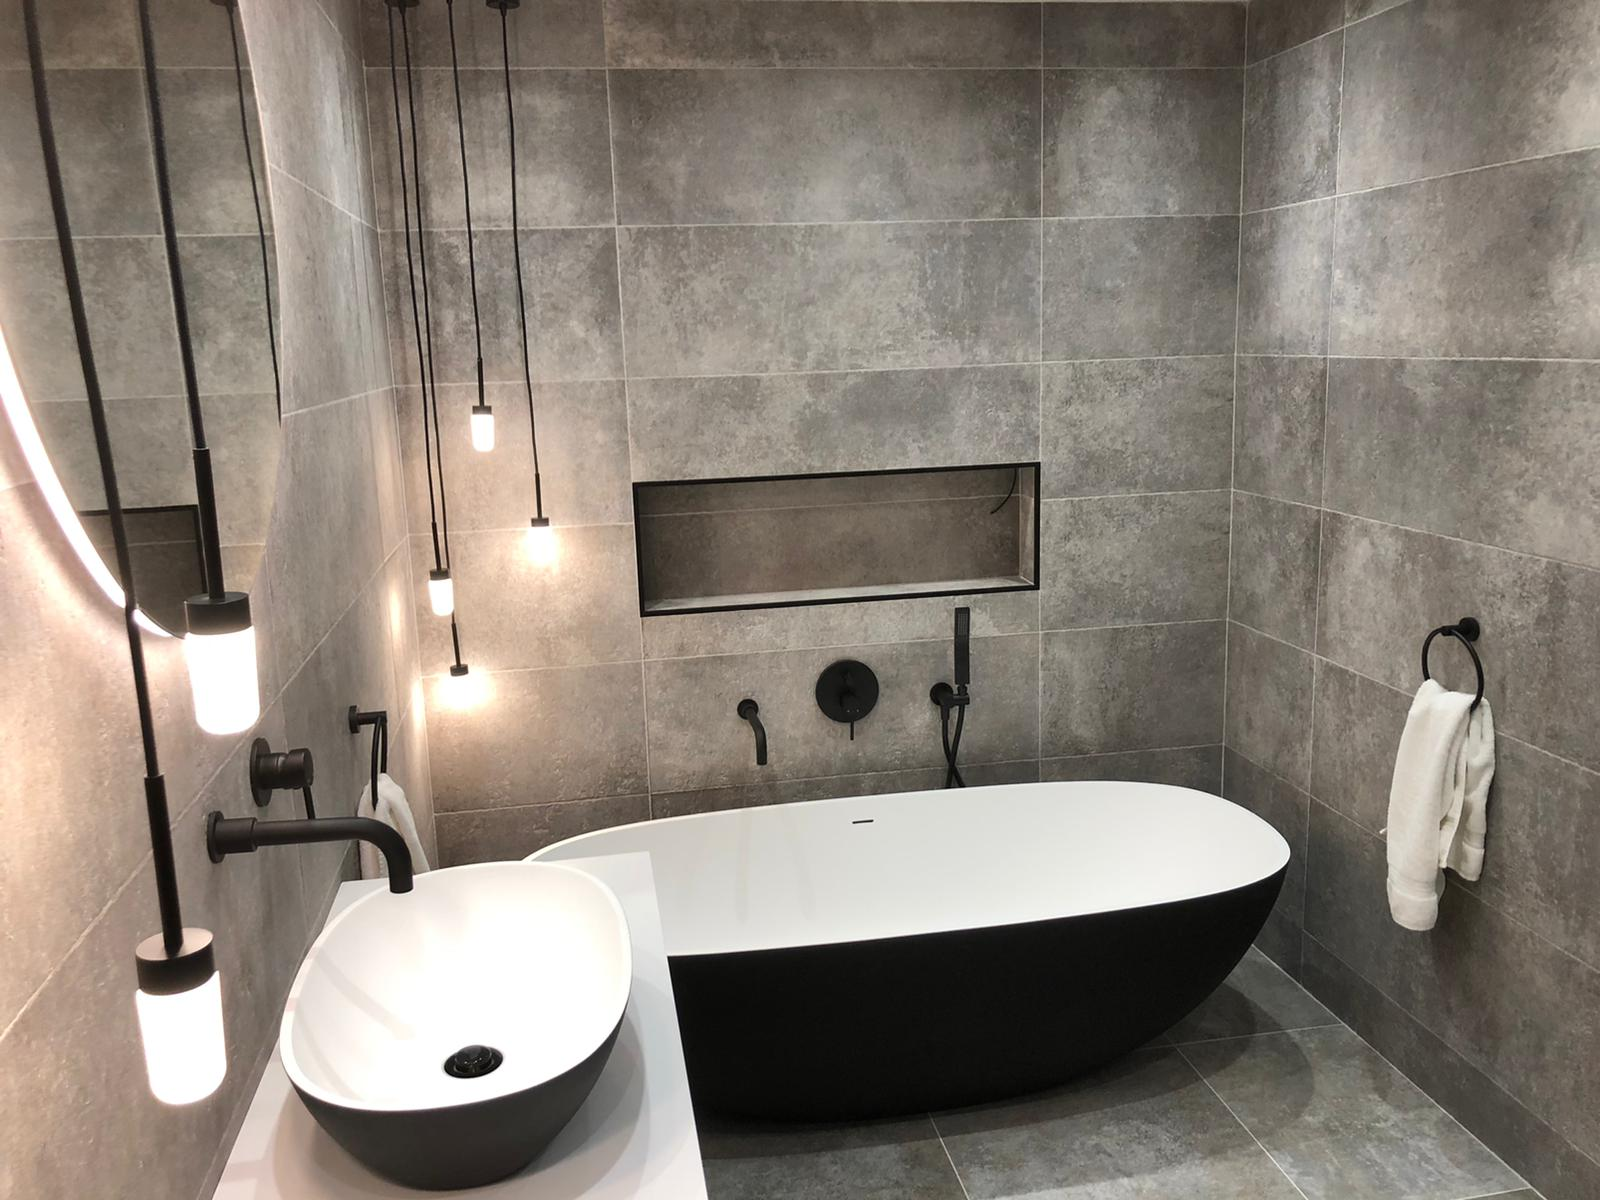 HardieBacker®: The perfect partner for luxury bathroom finishes!